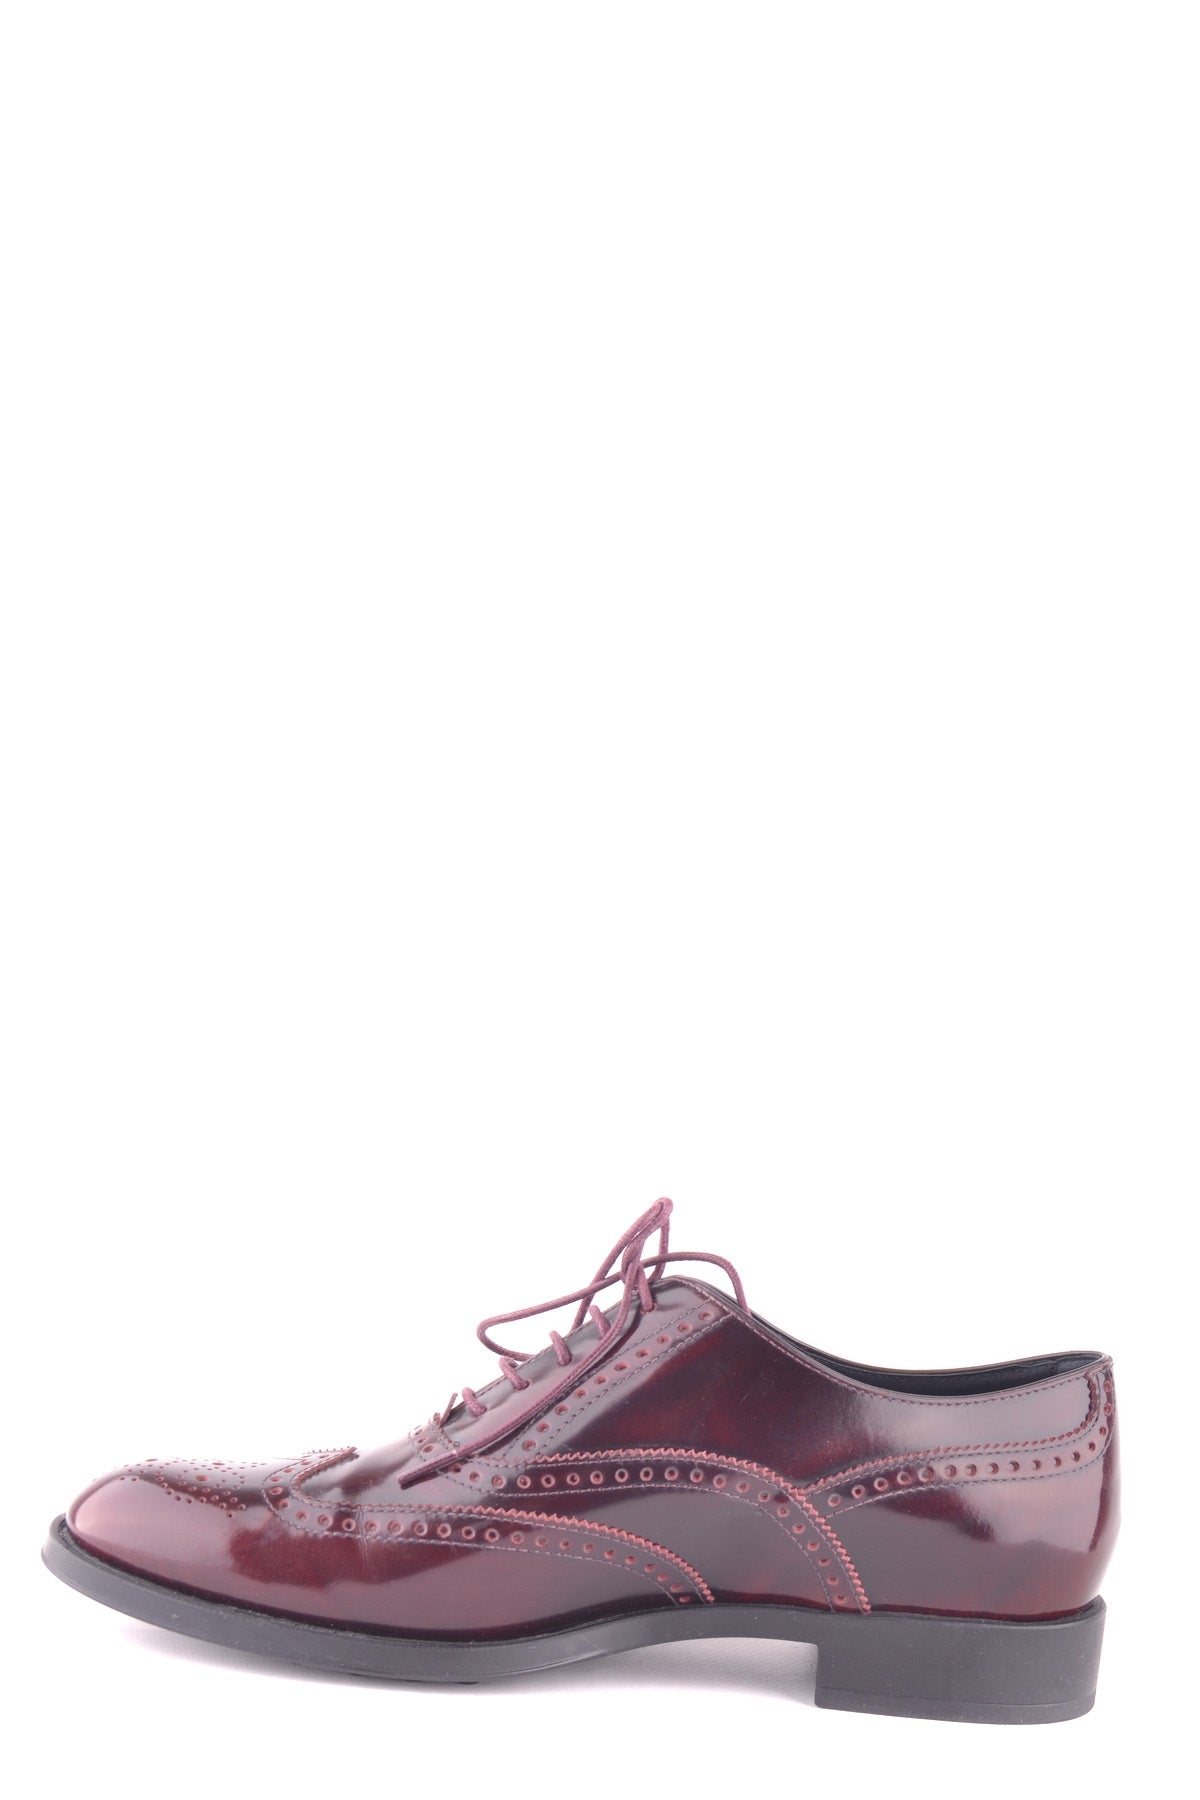 Shoes Tod'S-Classic flats - WOMAN-Product Details Type Of Accessory: ShoesTerms: New With LabelYear: 2017Main Color: BurgundyGender: WomanMade In: ItalySize: EuSeason: Spring / SummerComposition: Leather 100%-Keyomi-Sook